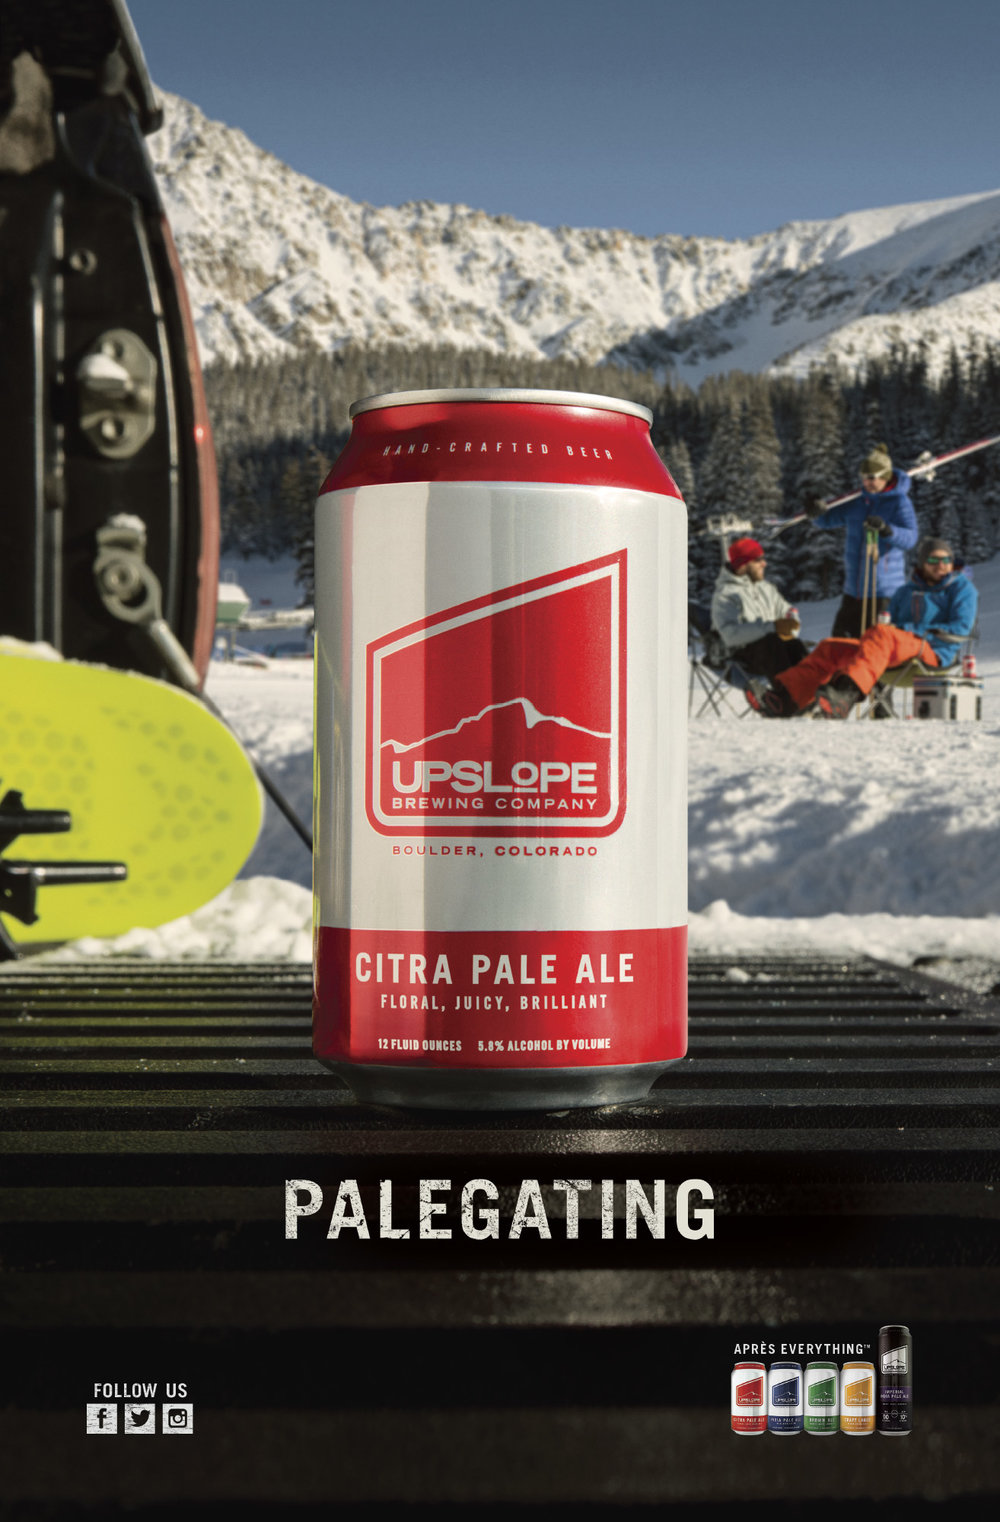 Upslope_Palegating_Winter_Poster.jpg